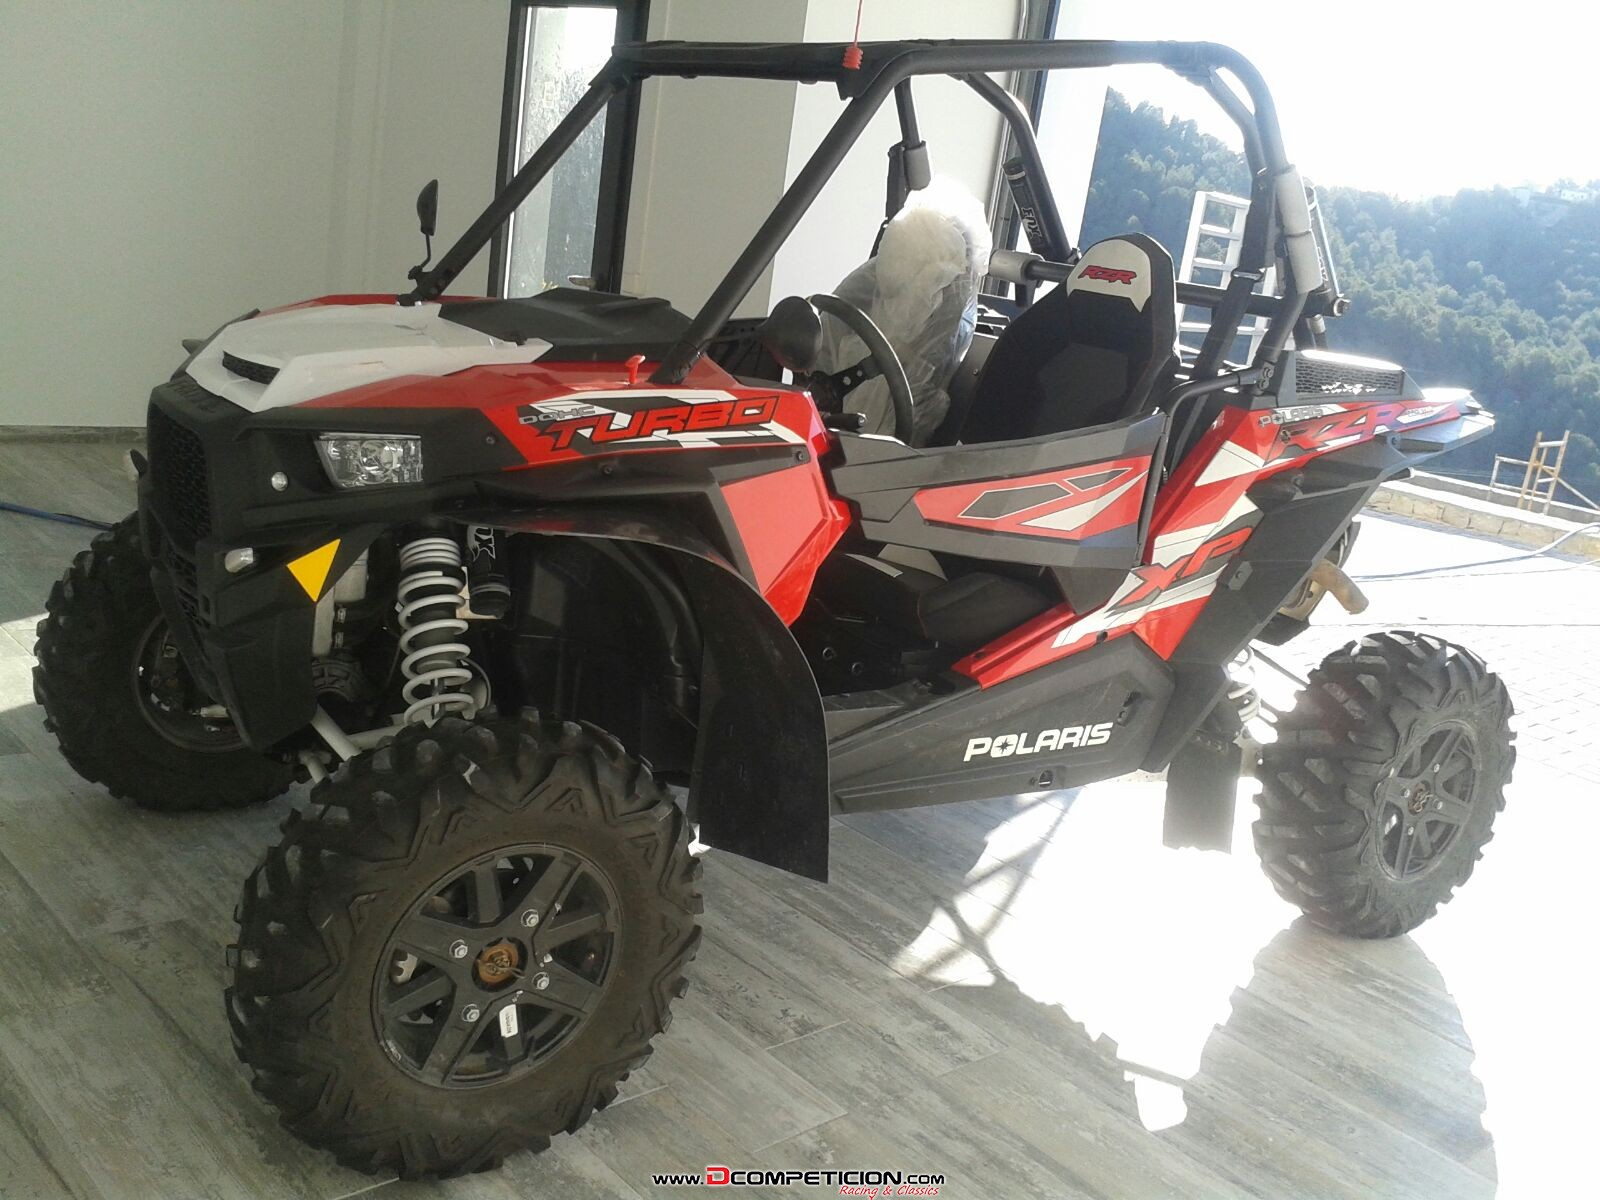 Foto1 Polaris RZR Turbo 2016